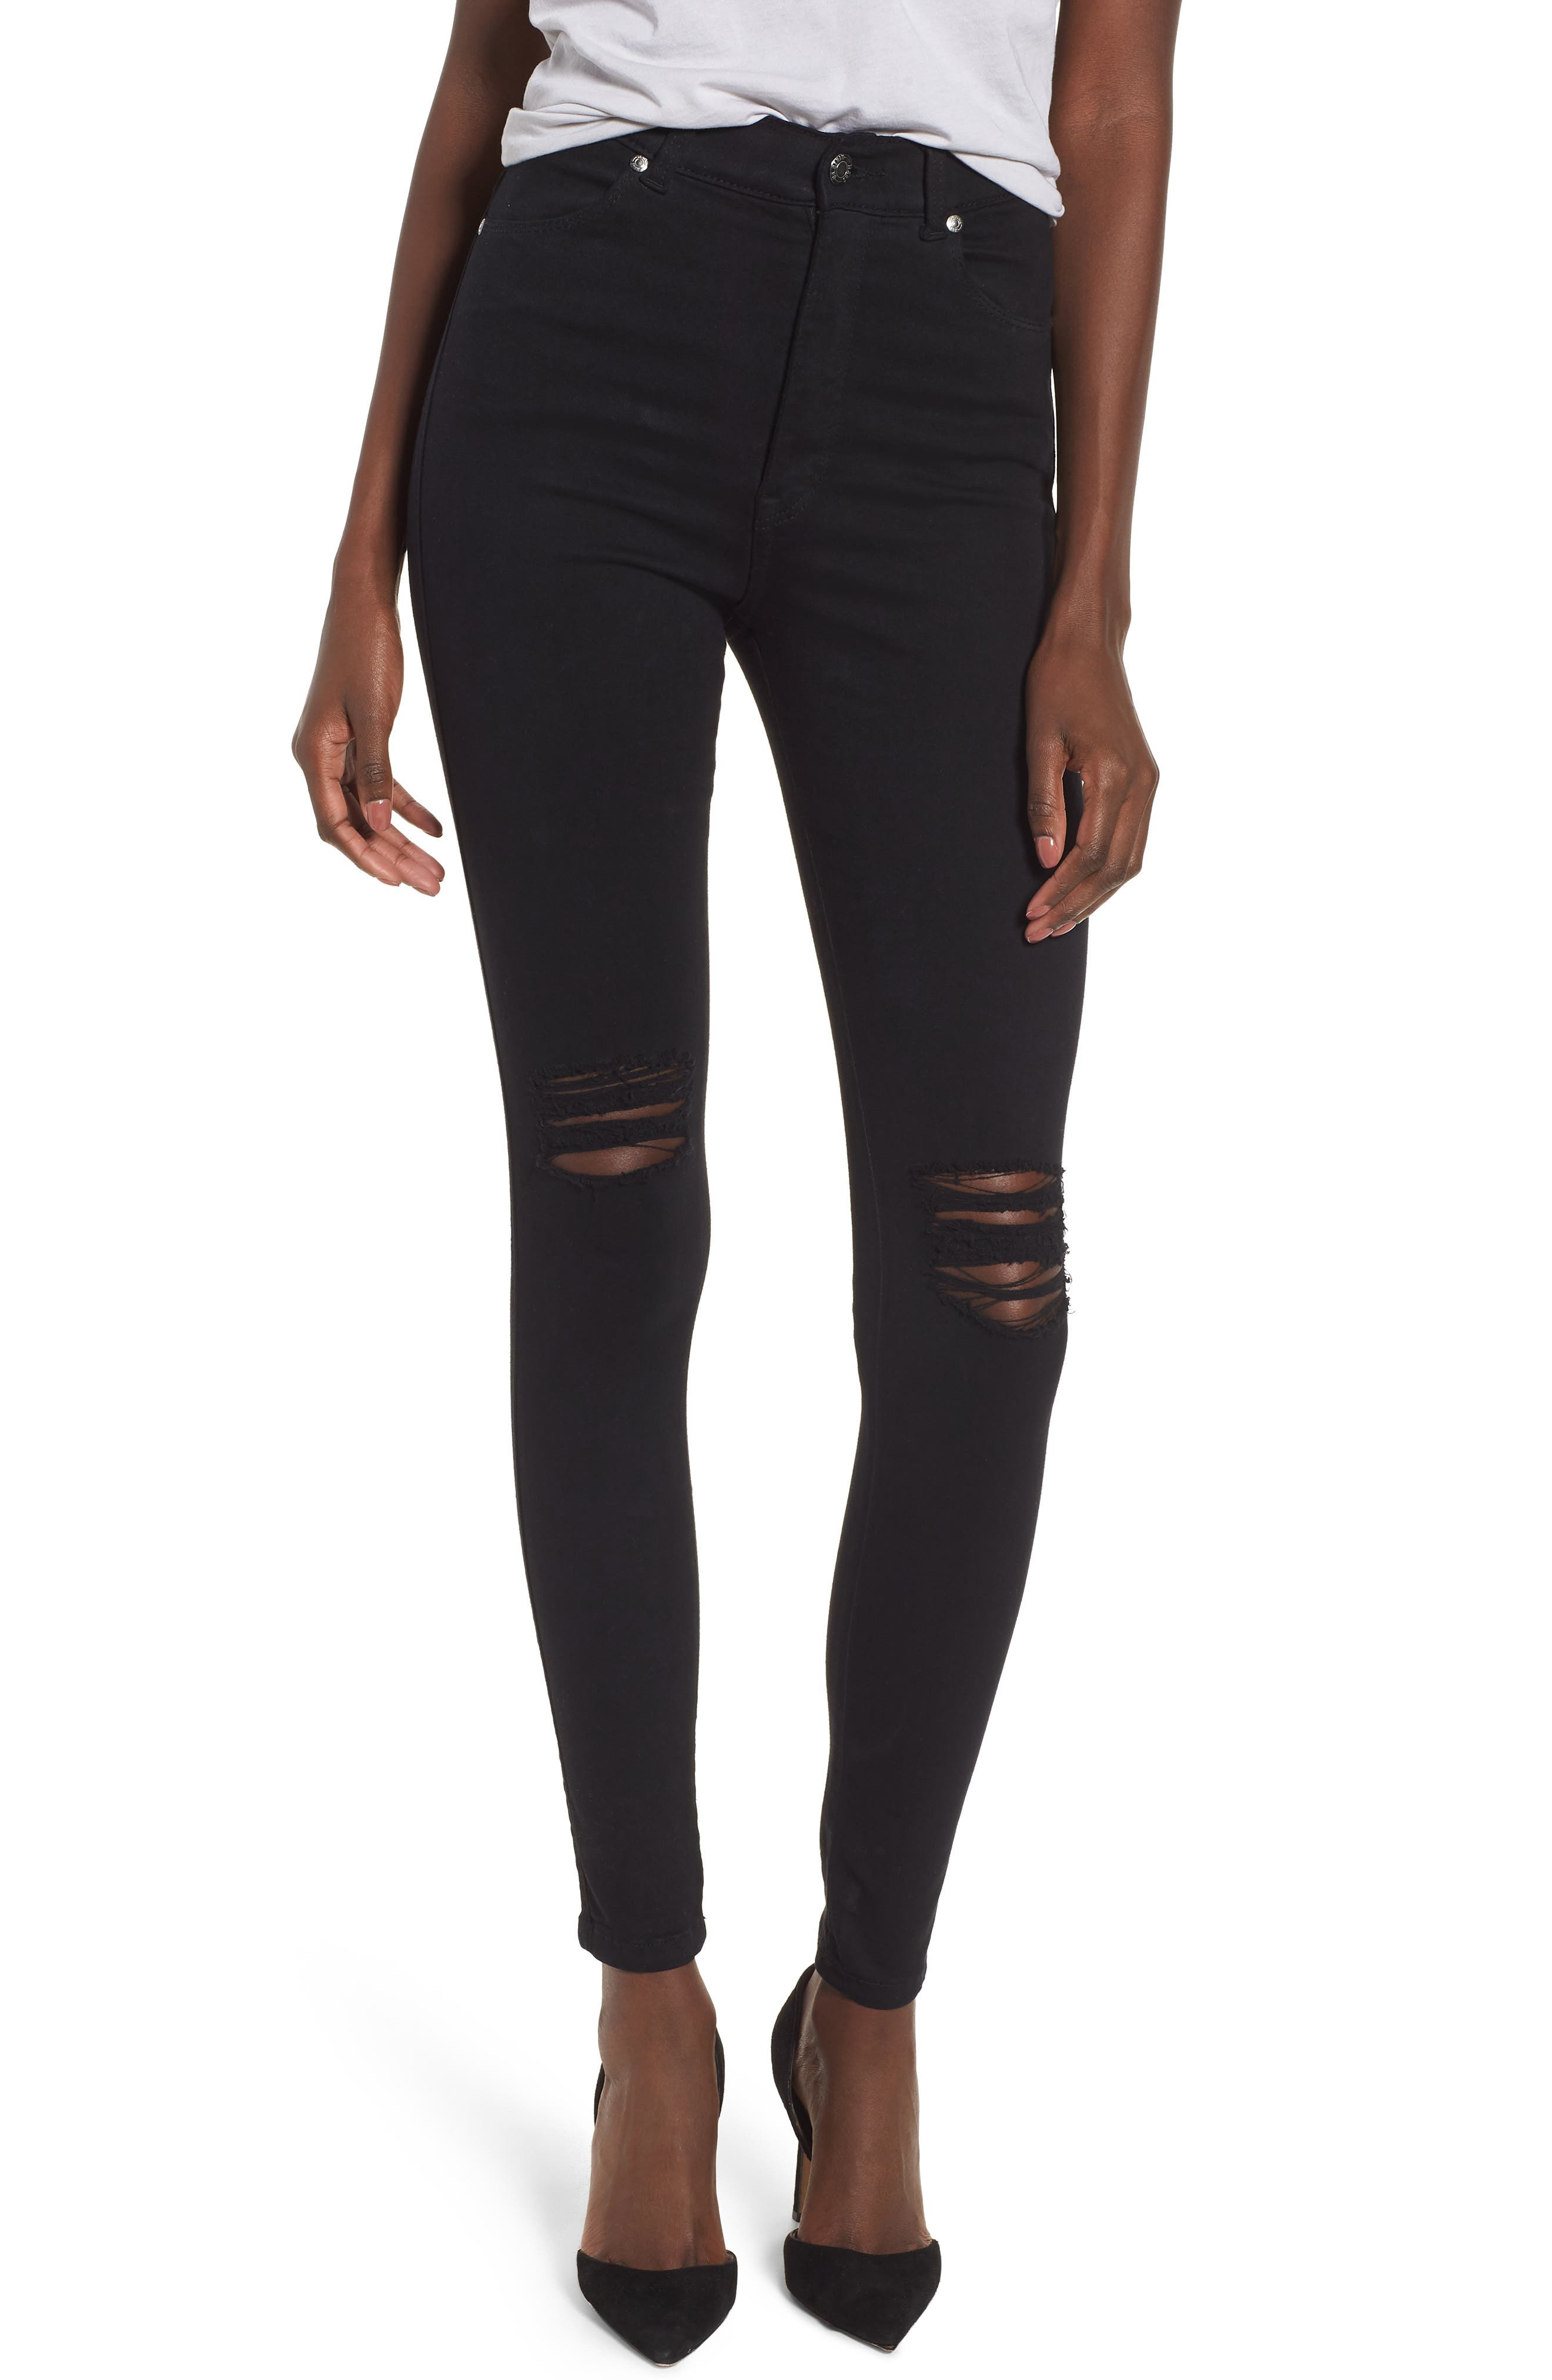 Moxy Ripped Knee Skinny Jeans,                             Main thumbnail 1, color,                             Black